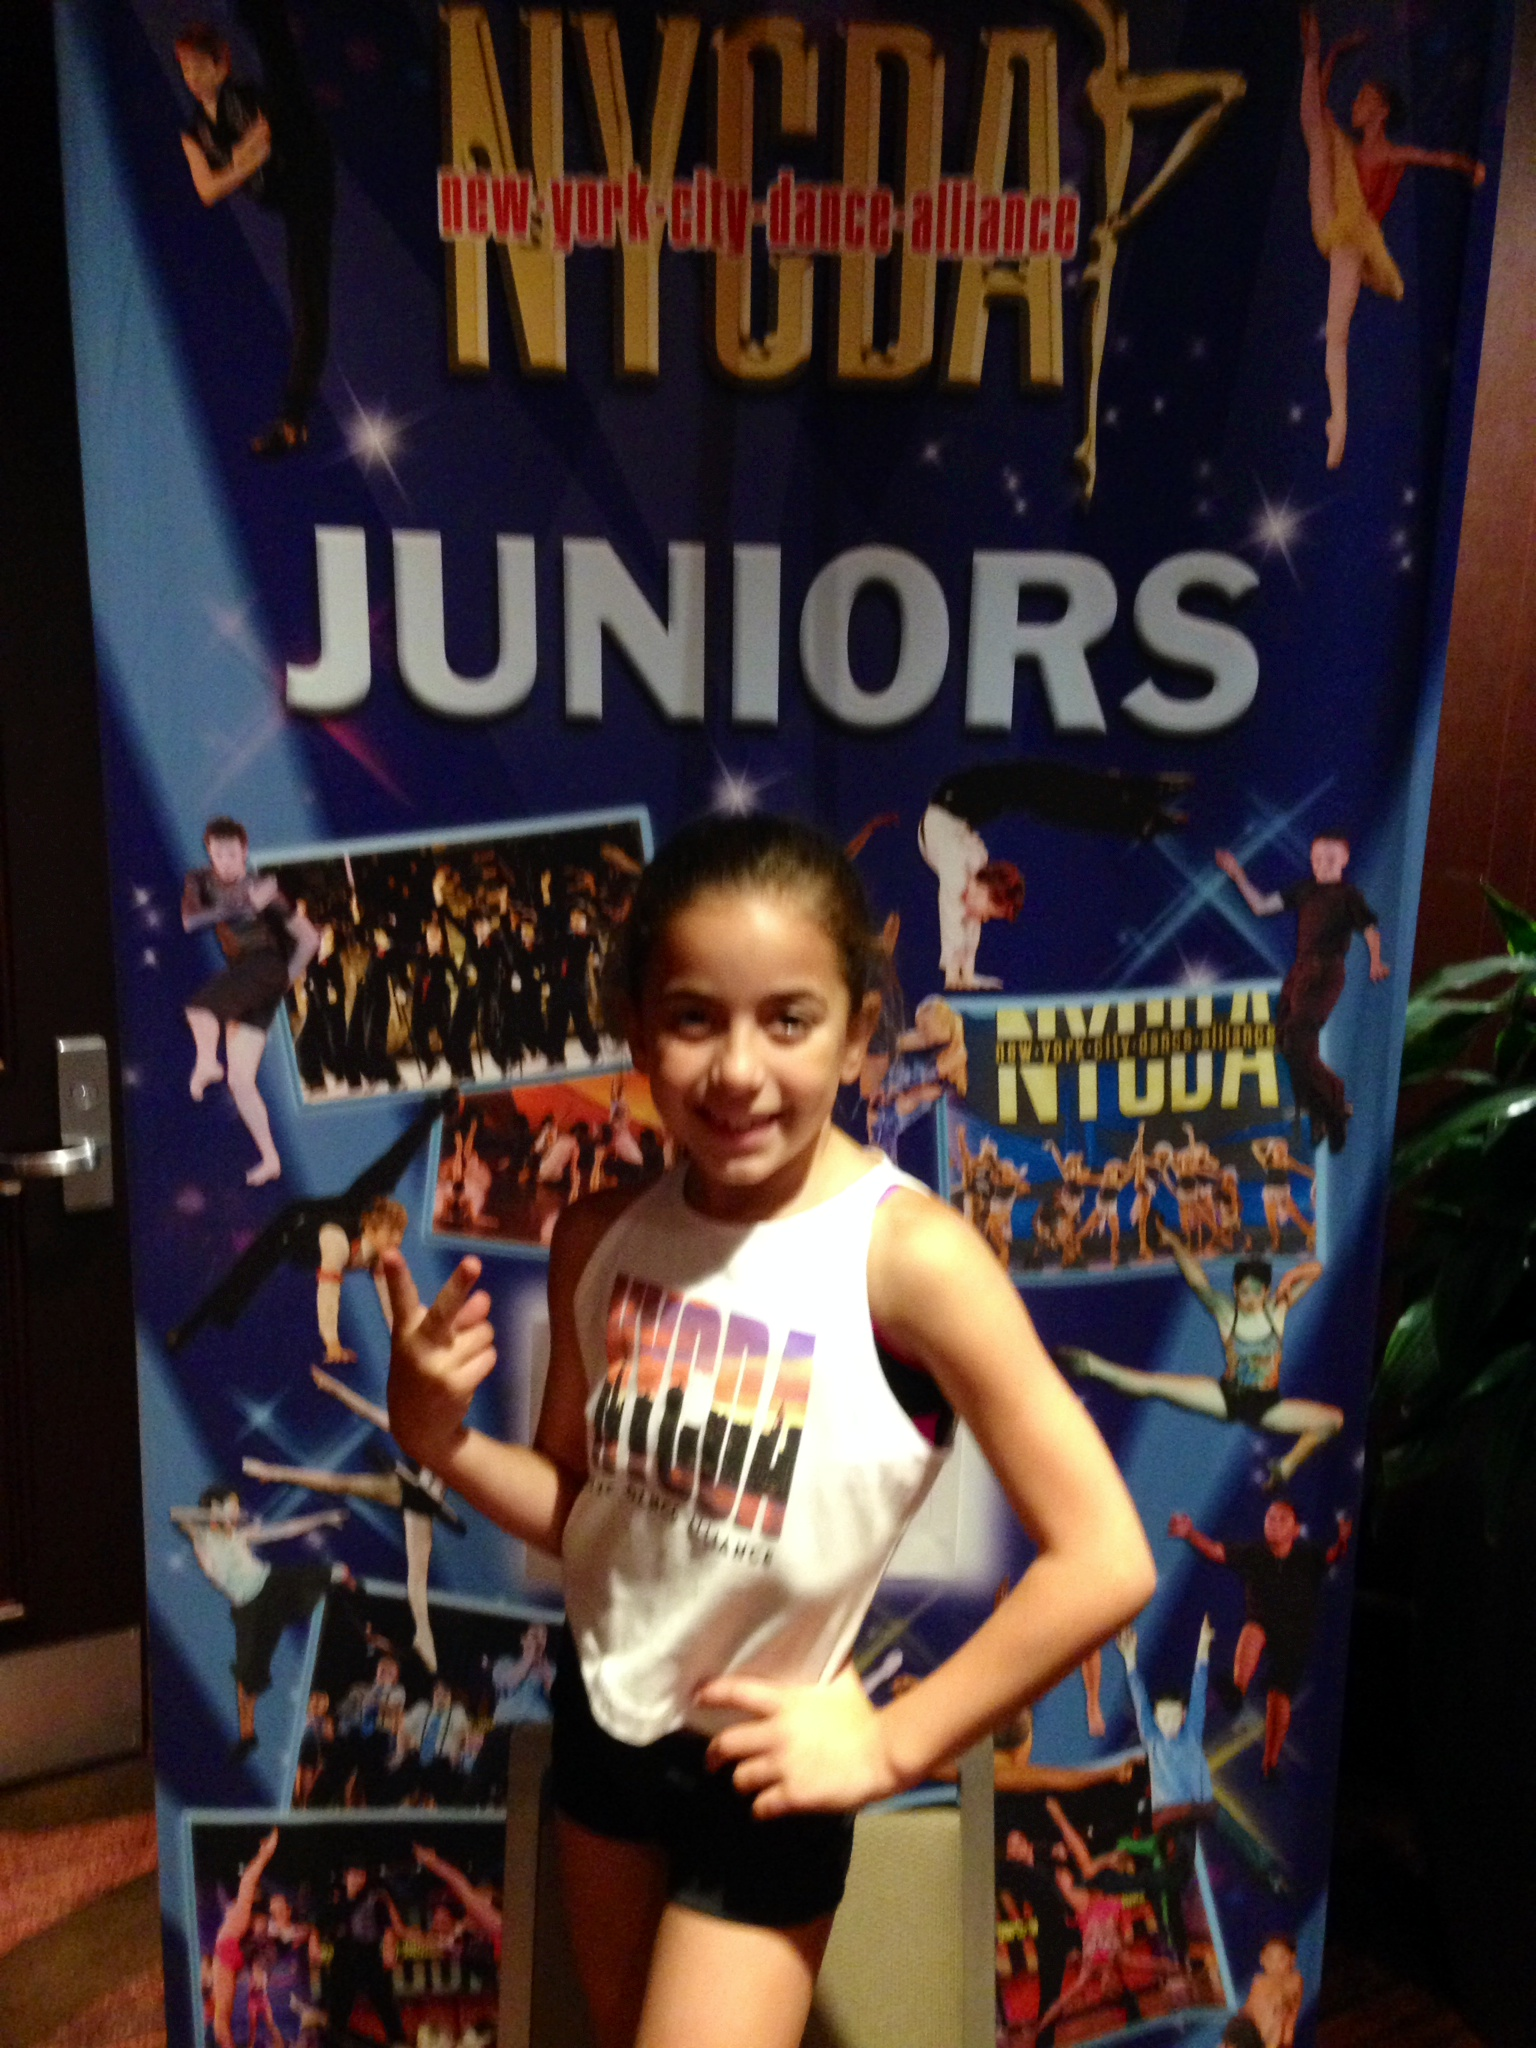 GiaNina-in-front-of-NYCDA-Nationals-Juniors-sign.jpg